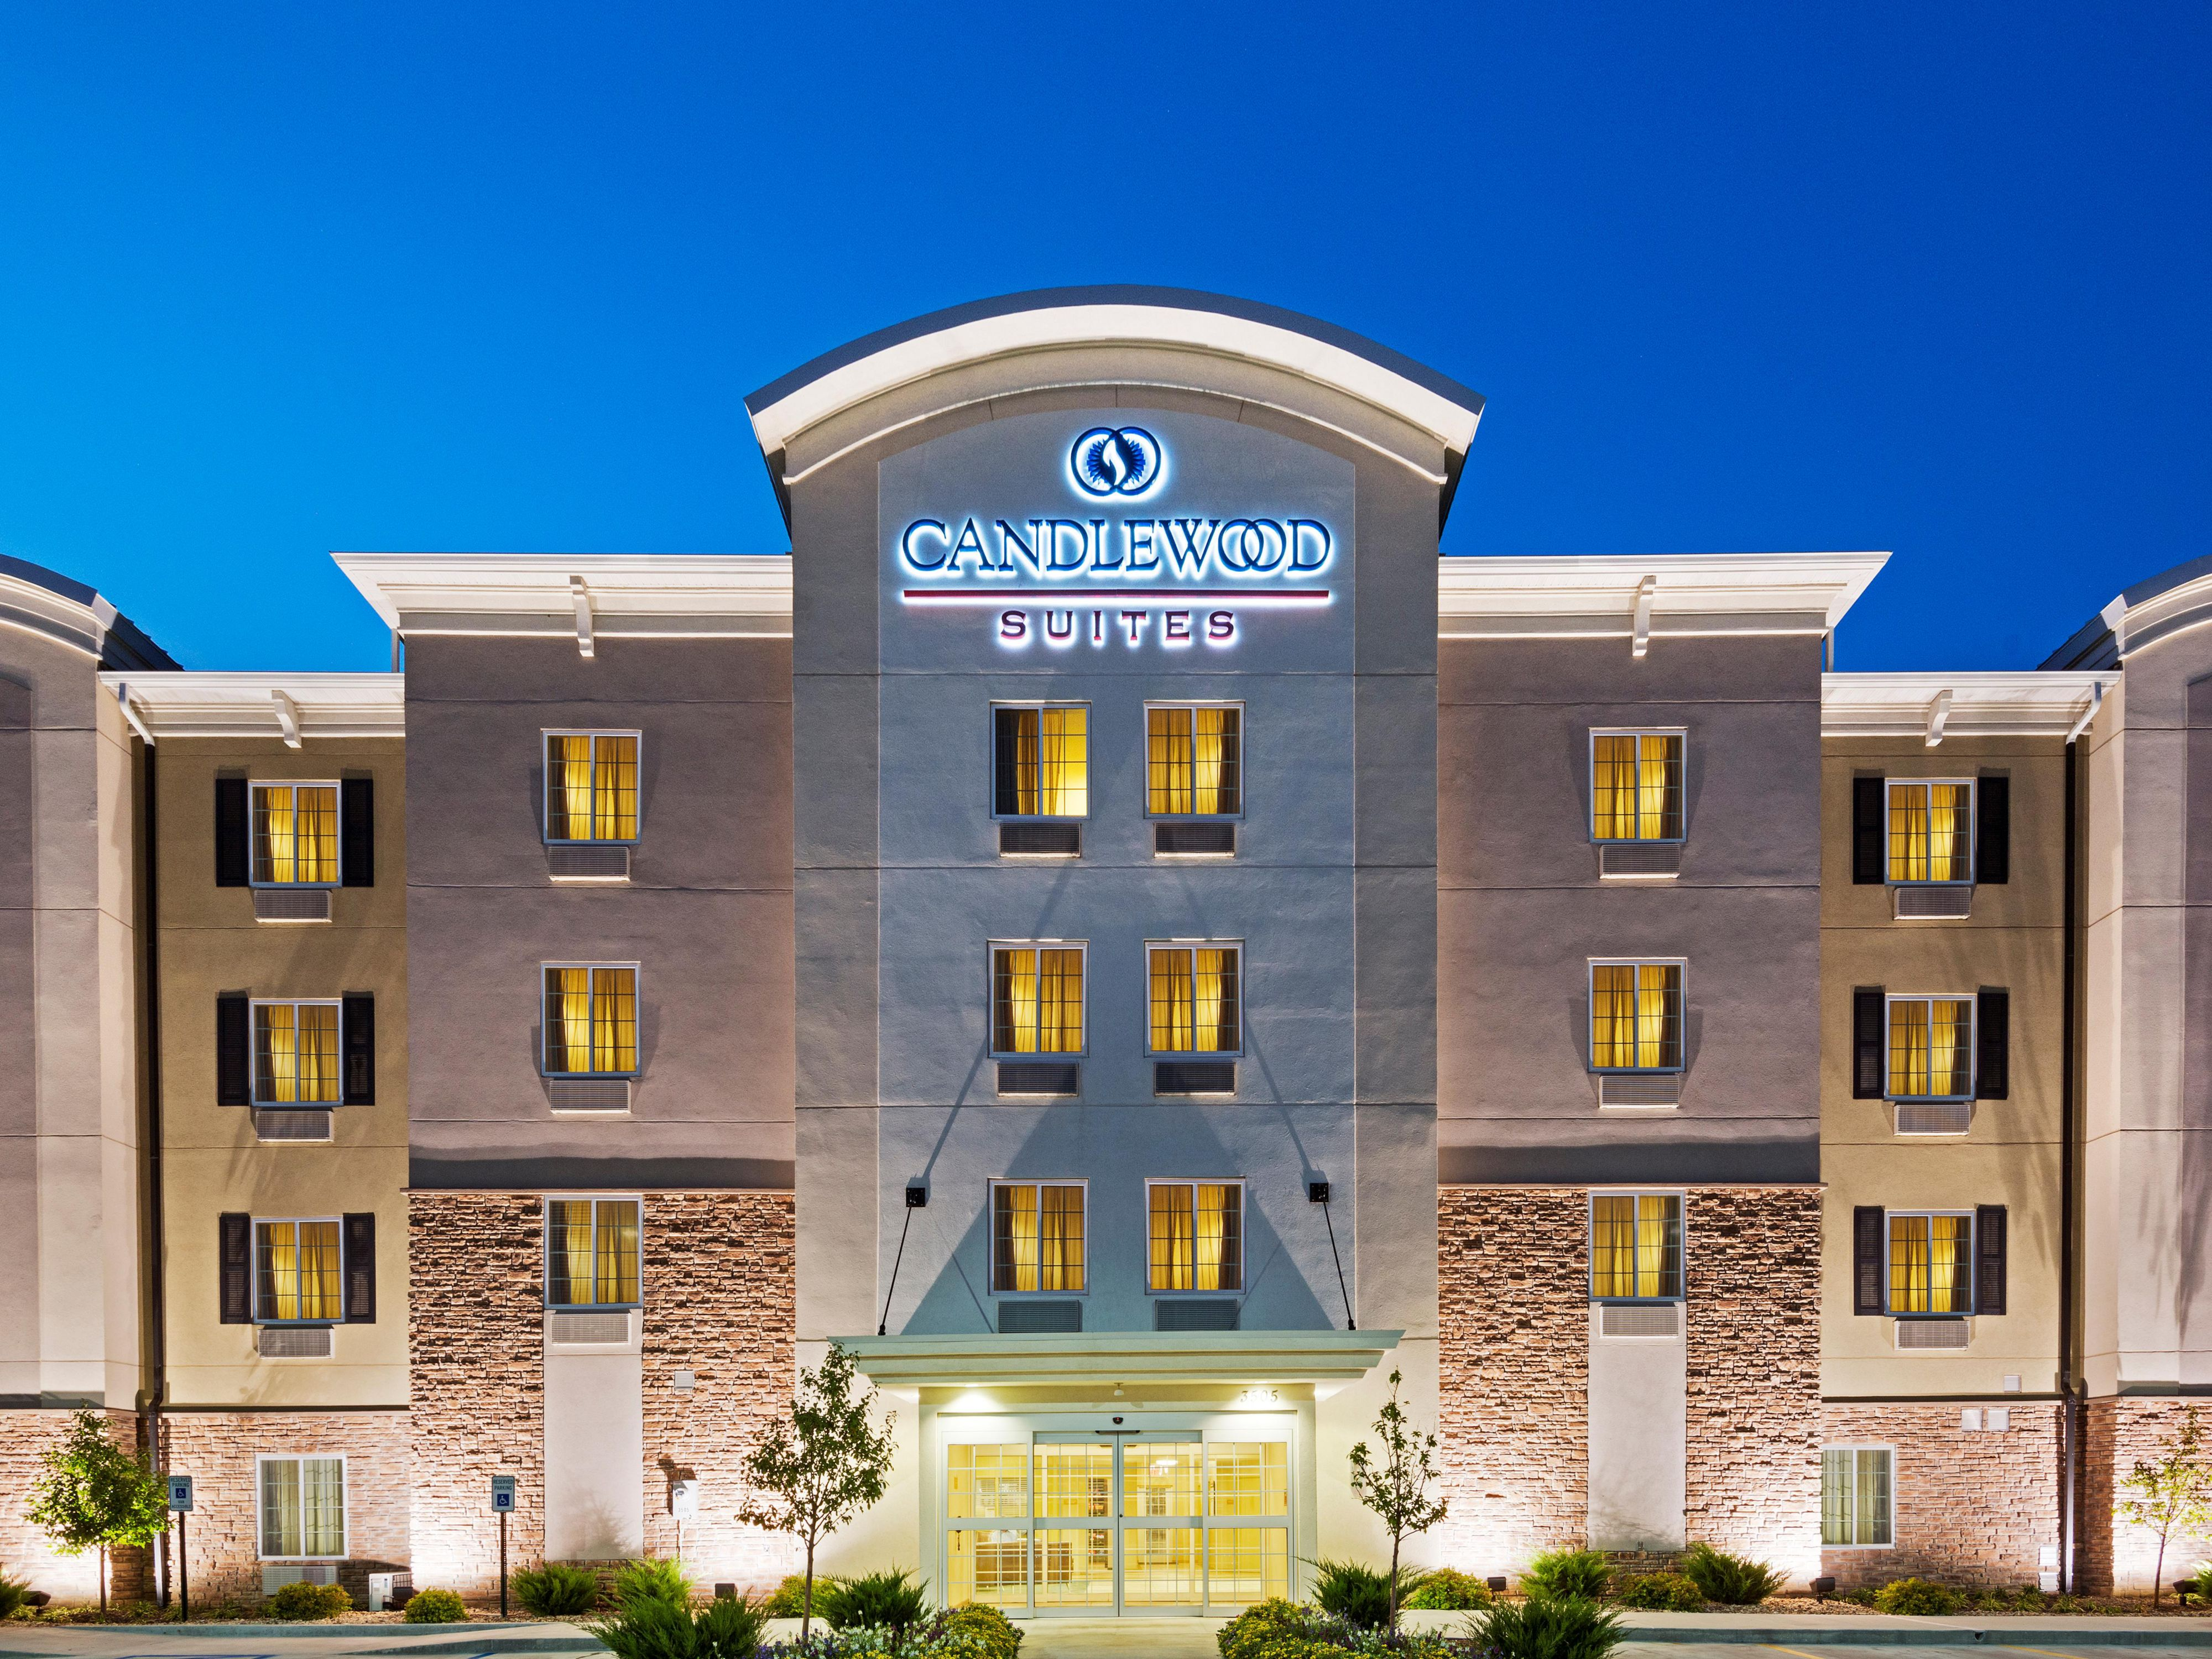 Edmonton Hotels Candlewood Suites West Extended Stay Hotel In Alberta